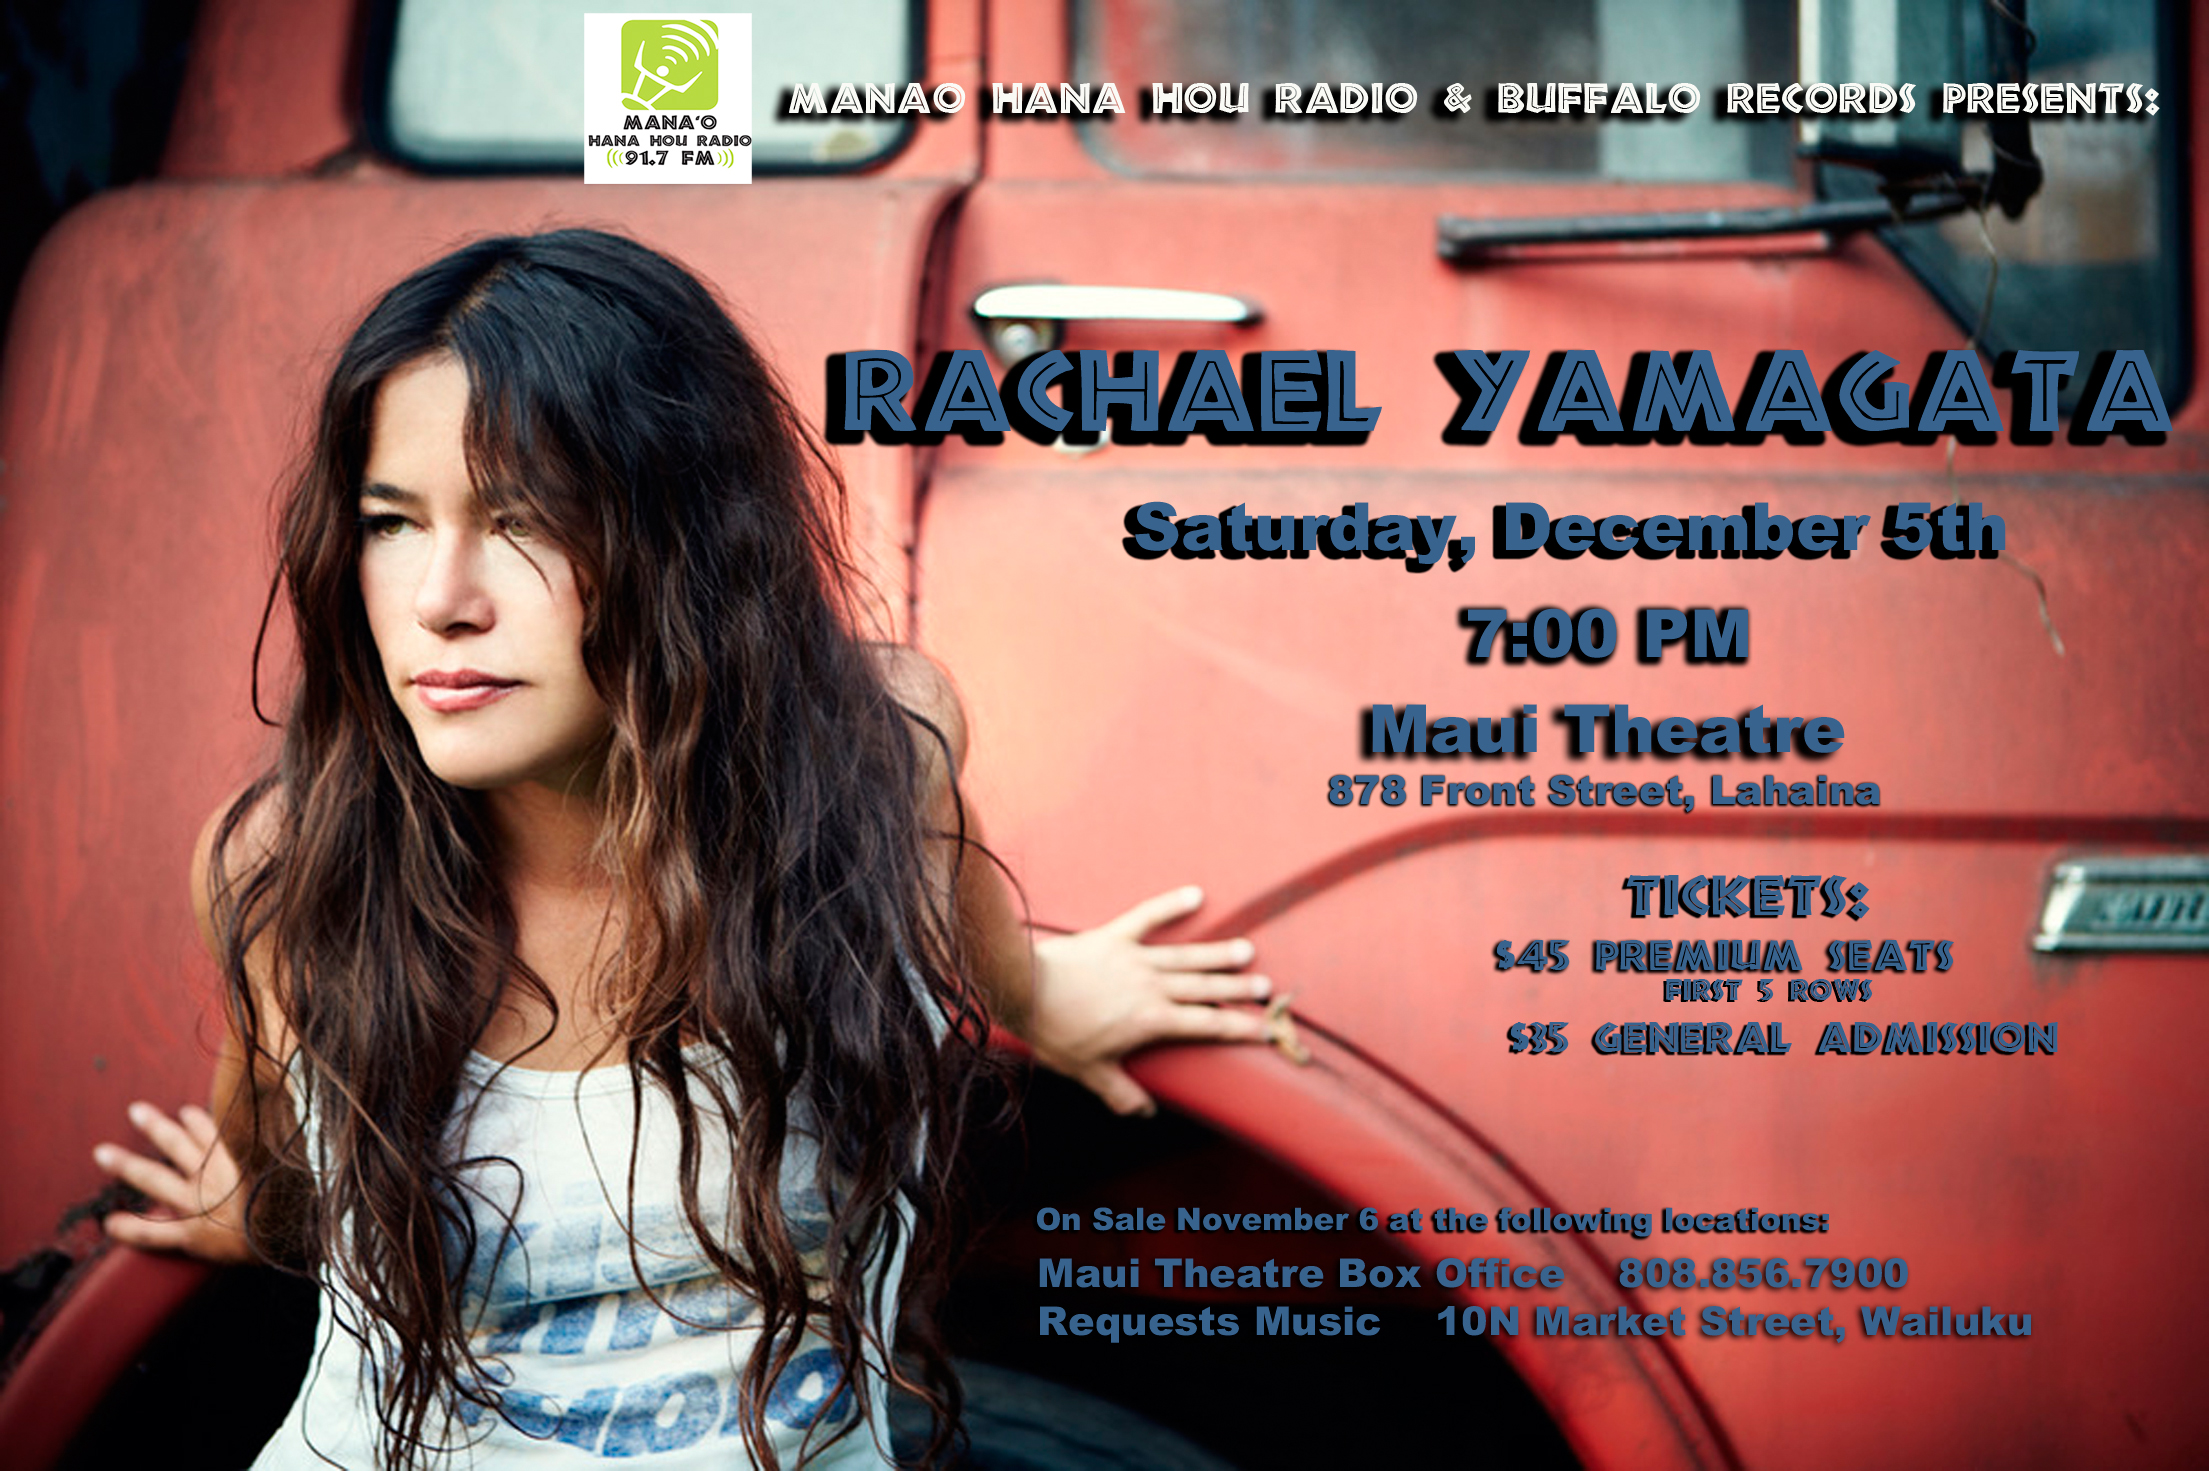 rachaelyamagata3_photo_gal_36300_photo_496340252_lr copy 2